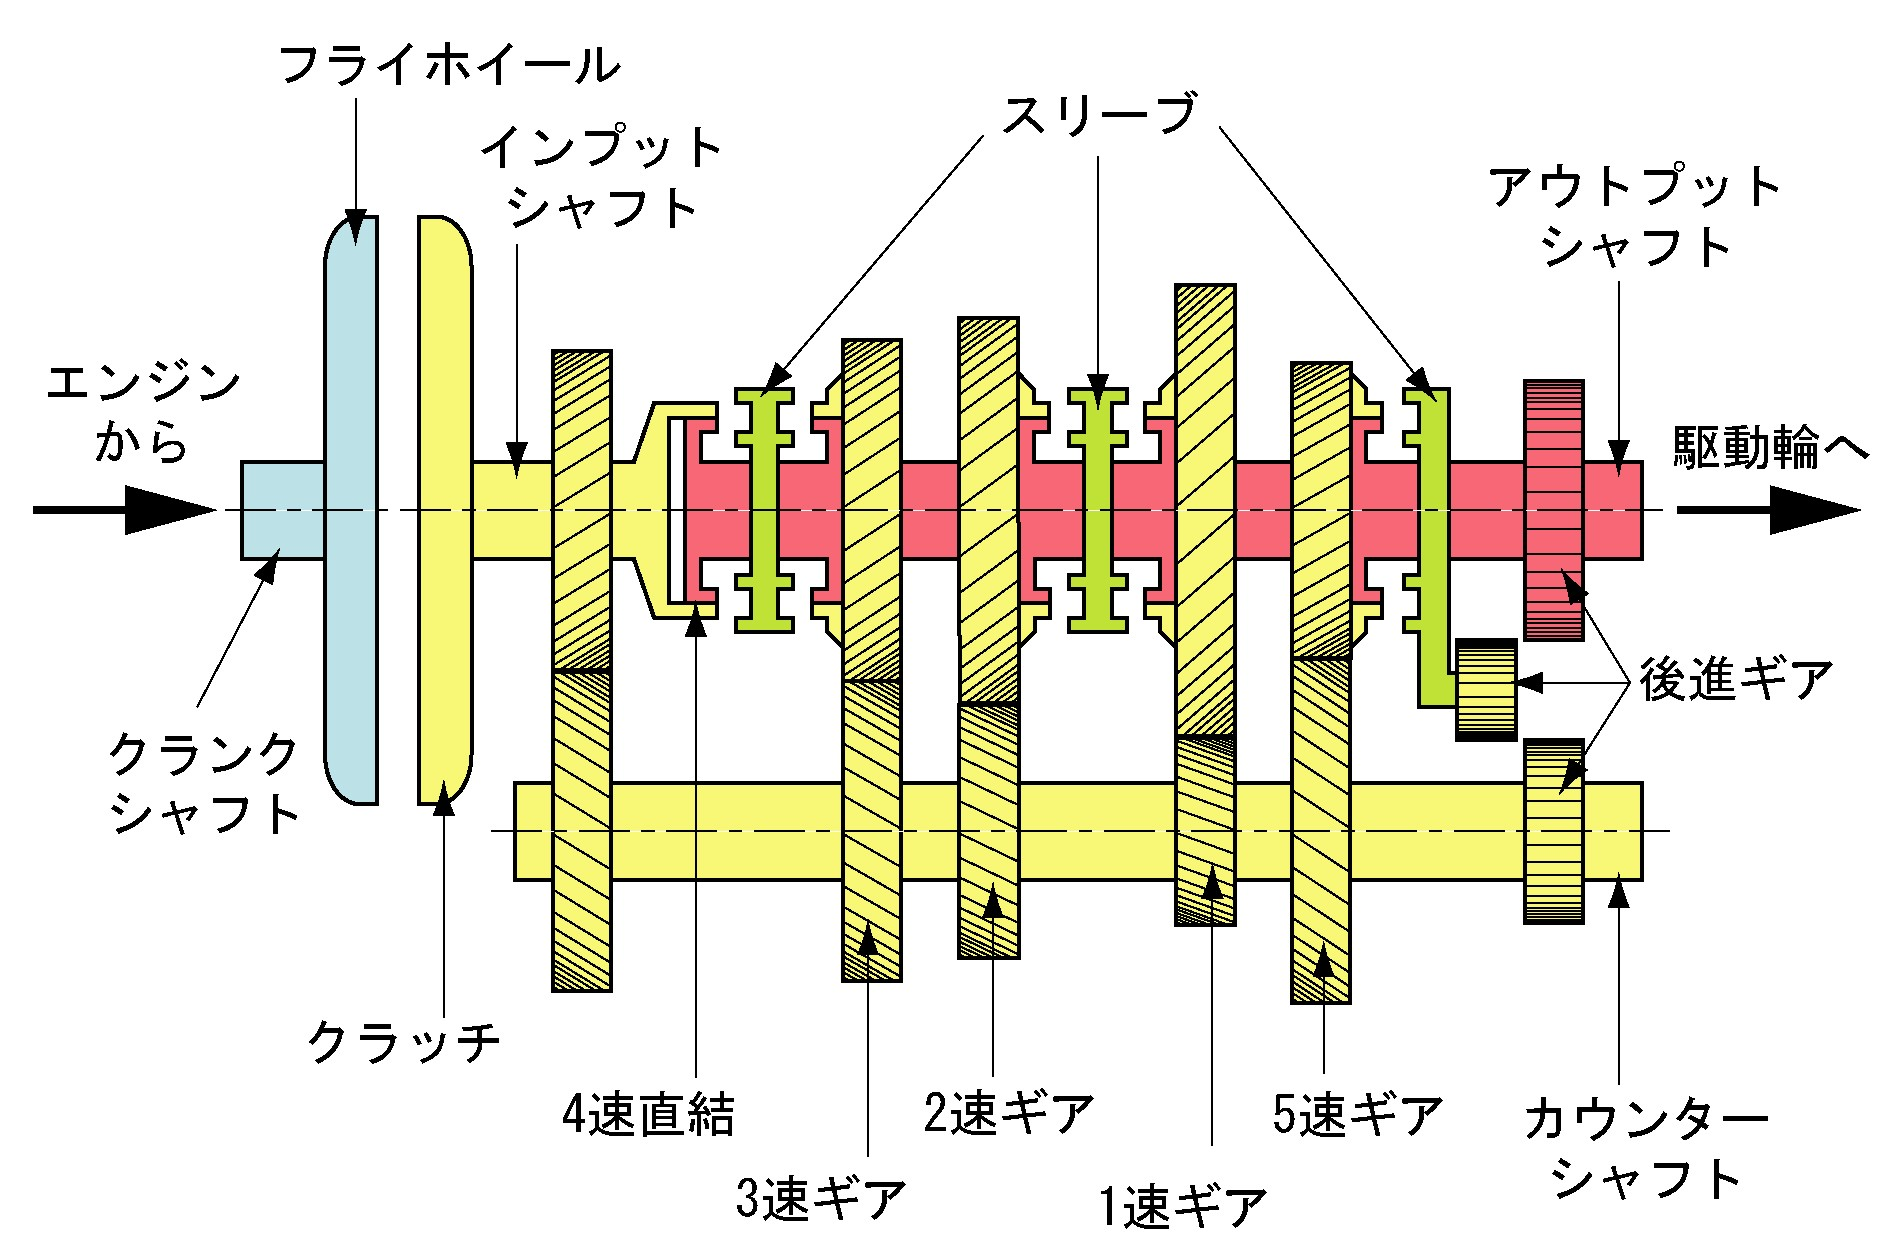 Manual Gearbox Diagram File Internal Structure Of Manual Transmission Wikimedia Mons Of Manual Gearbox Diagram